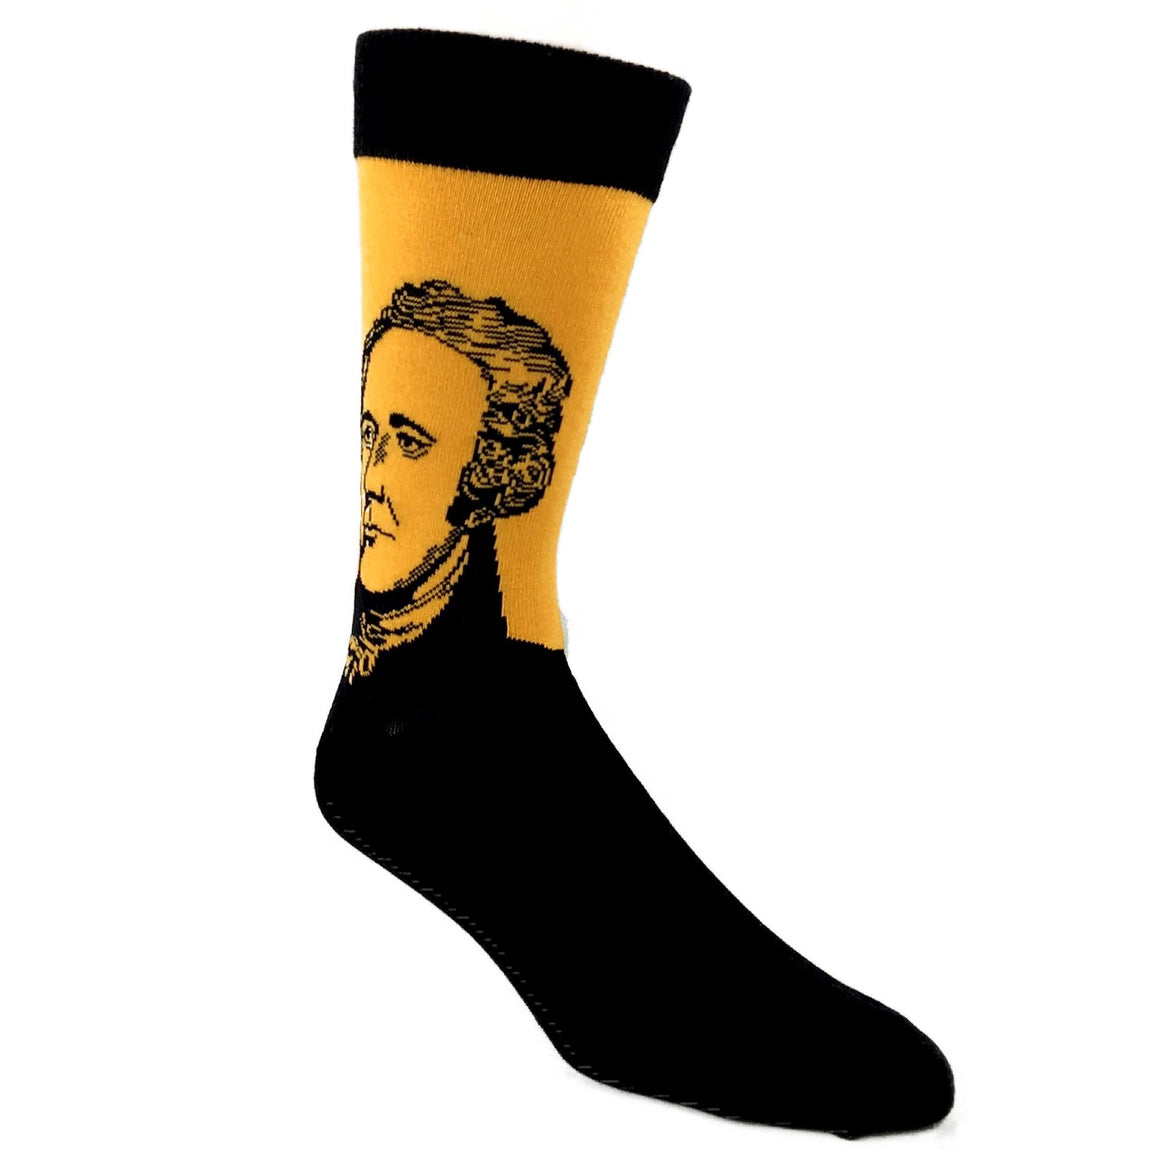 Alexander Hamilton Socks in Gold by SockSmith - The Sock Spot